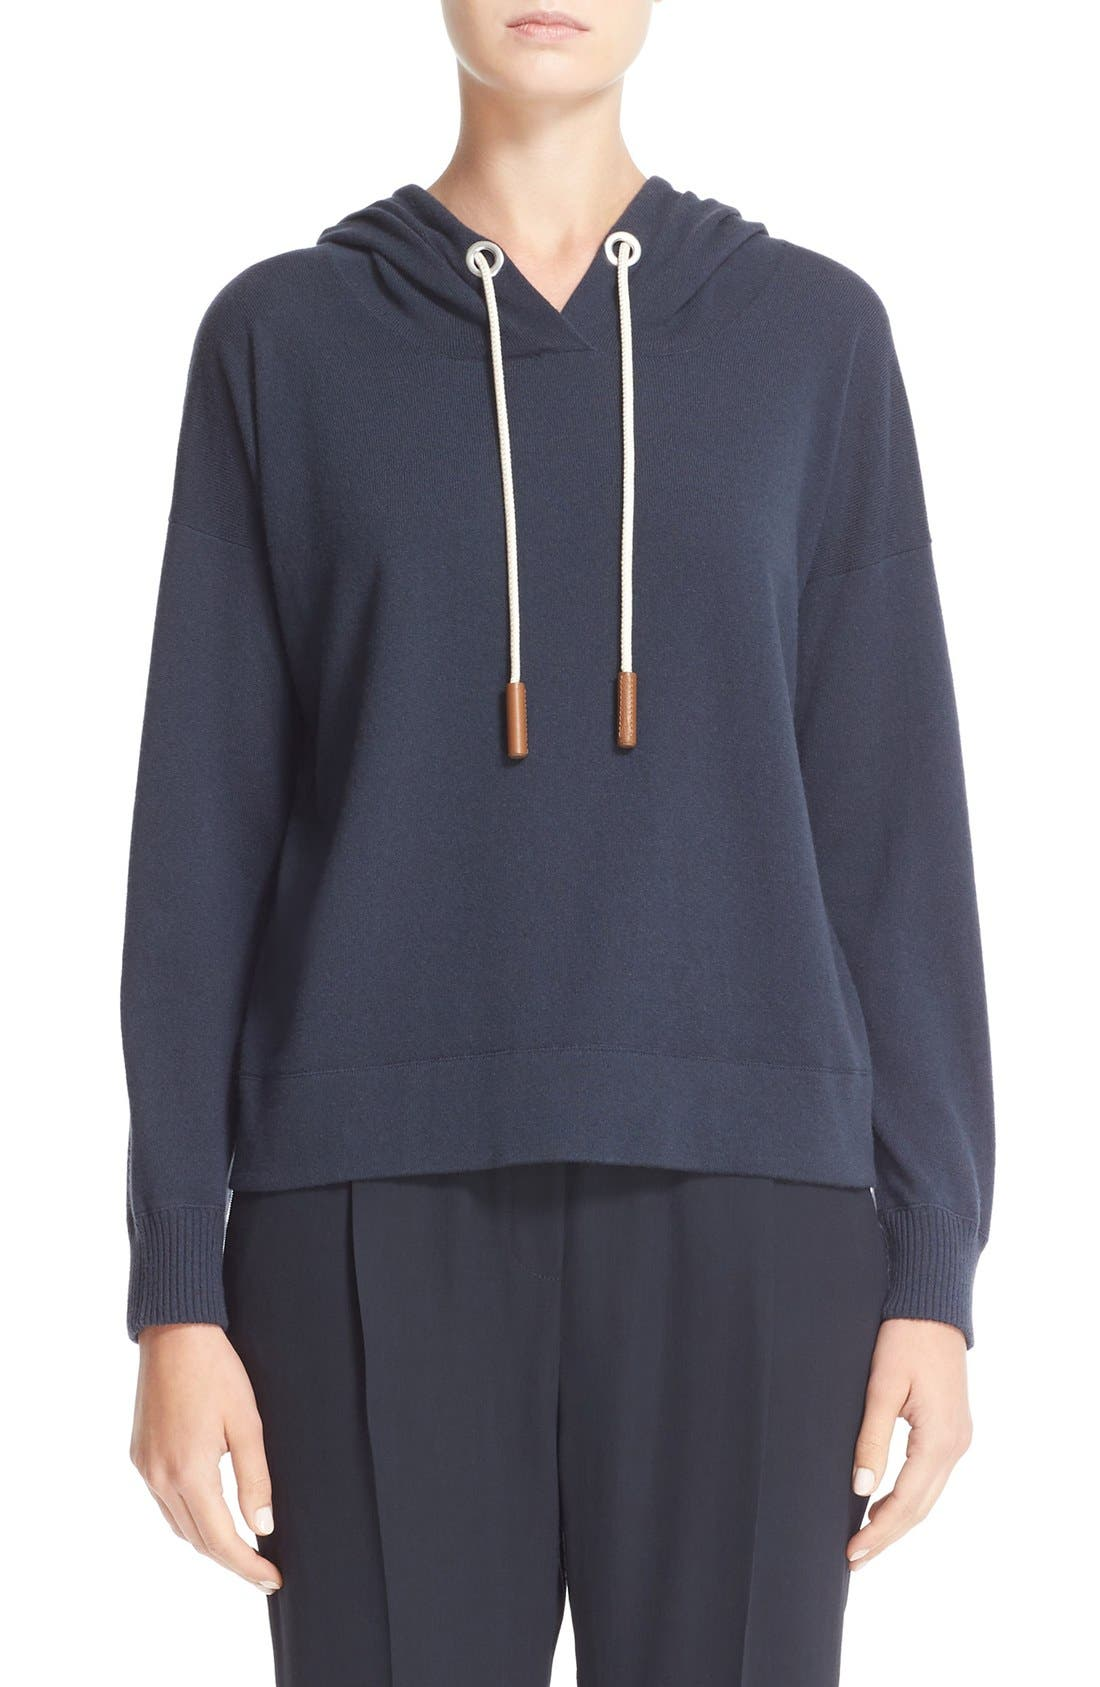 Main Image - Fabiana Filippi Cashmere Hooded Sweatshirt